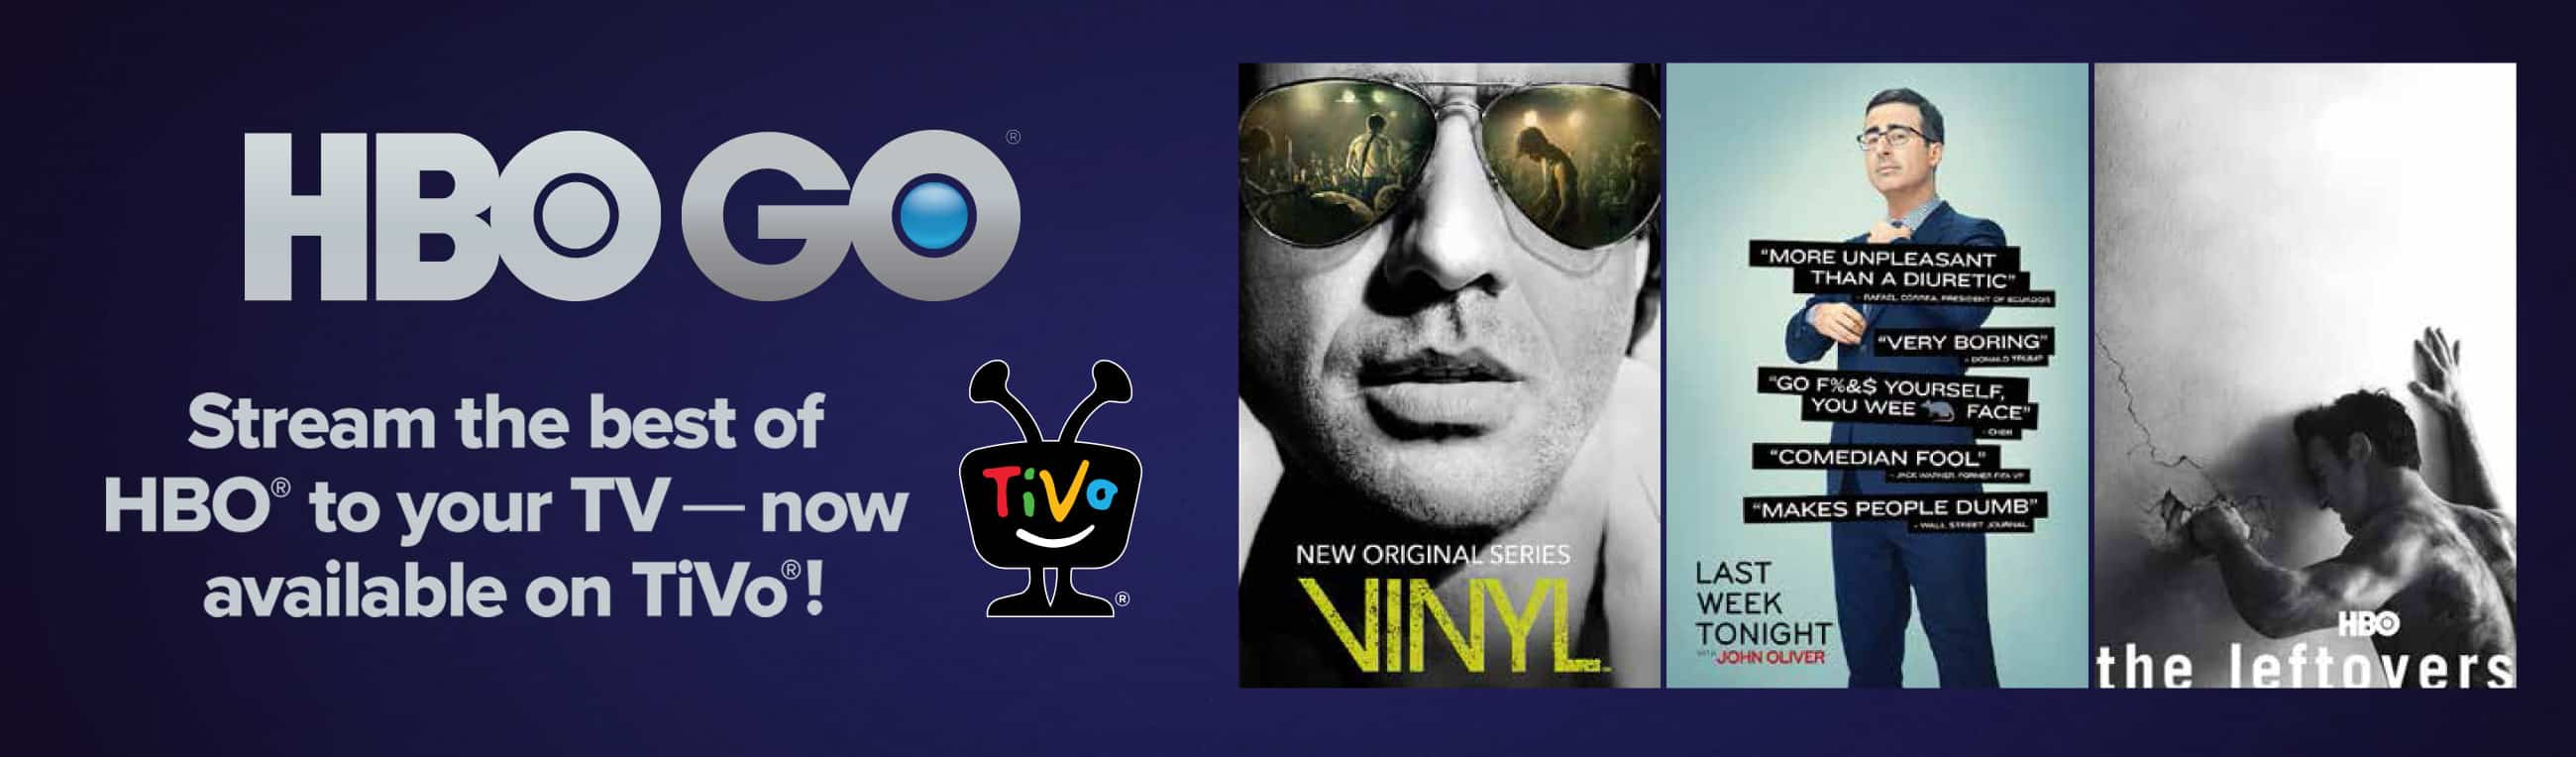 Hbogo Grande Dvr Powered By Tivo Tv On The Go Get The